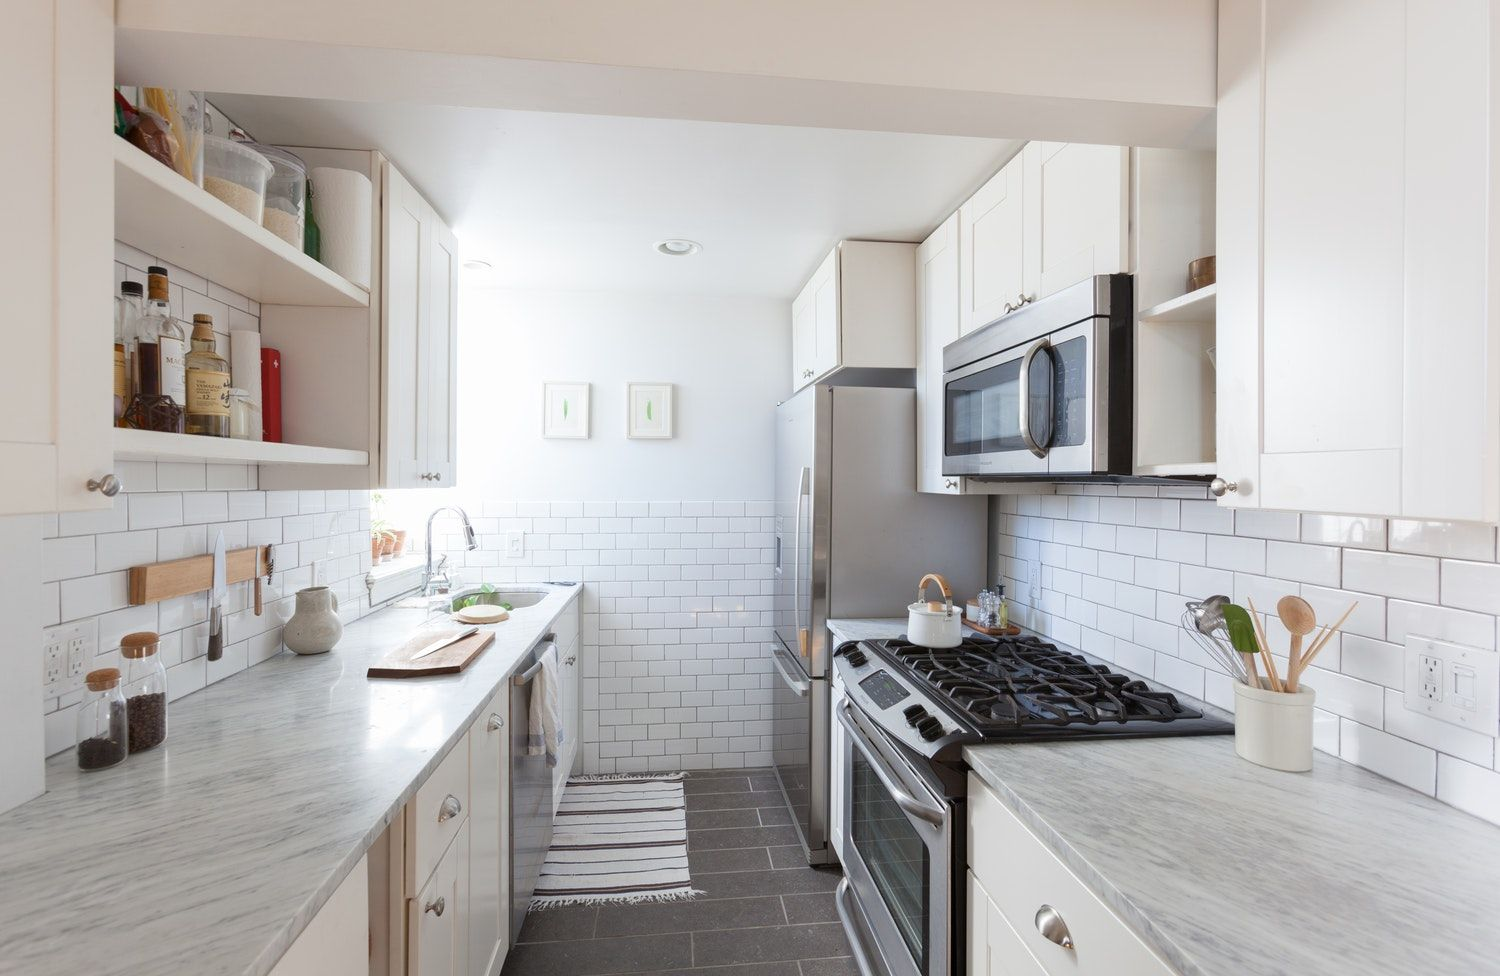 7 Things In Your Kitchen You Don T Have To Clean Nearly As Often